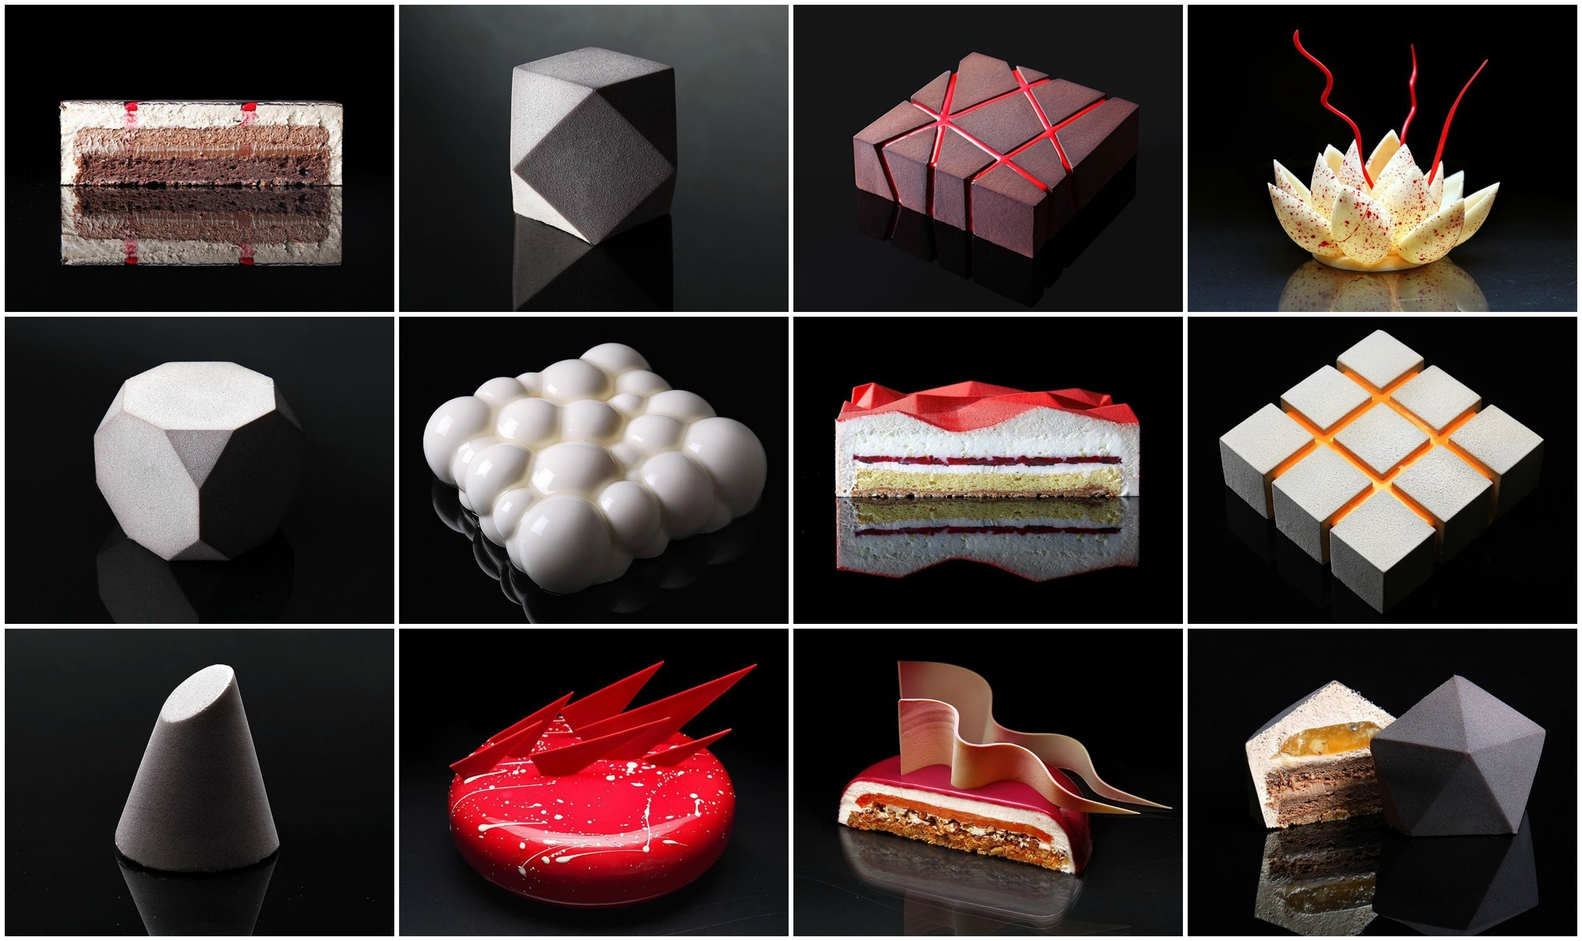 Some of the architectonically delicious creations of architect-turned-pastry-chef    Dinara Kasko   . Image courtesy of Dinara Kasko Pastry Art.